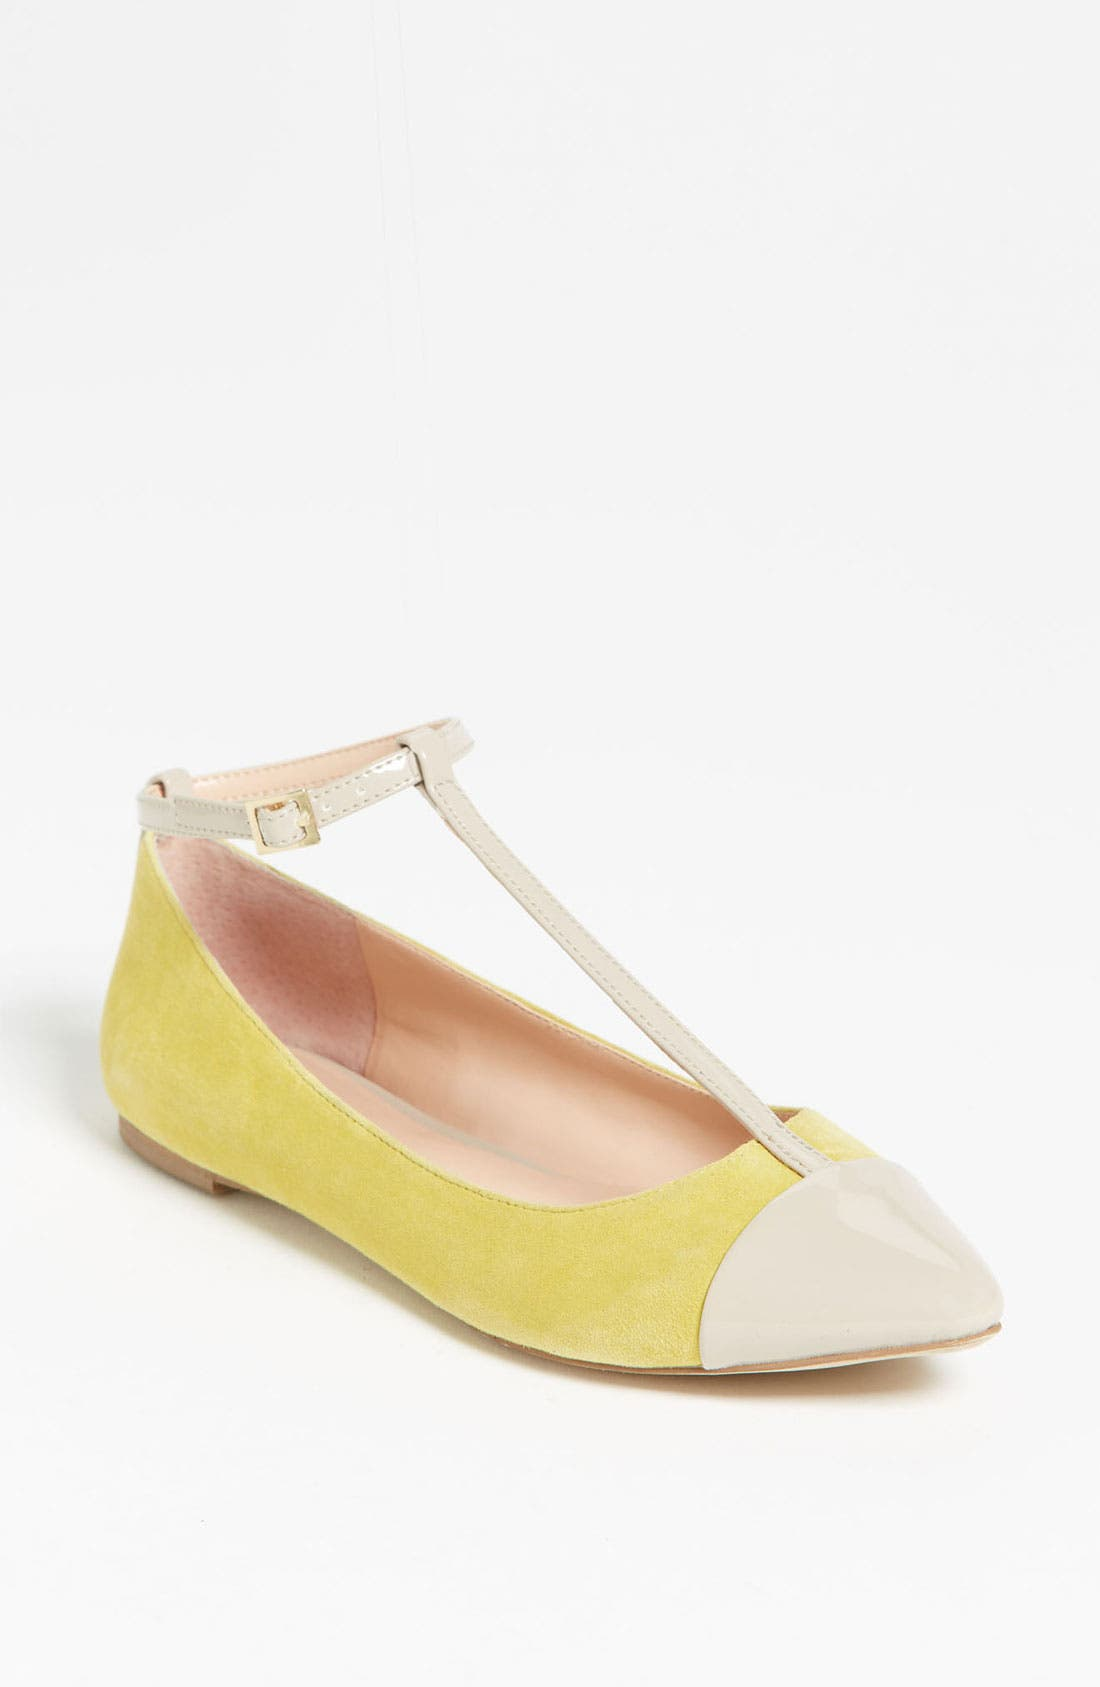 ,                             Julianne Hough for Sole Society 'Addy' Flat,                             Main thumbnail 27, color,                             330